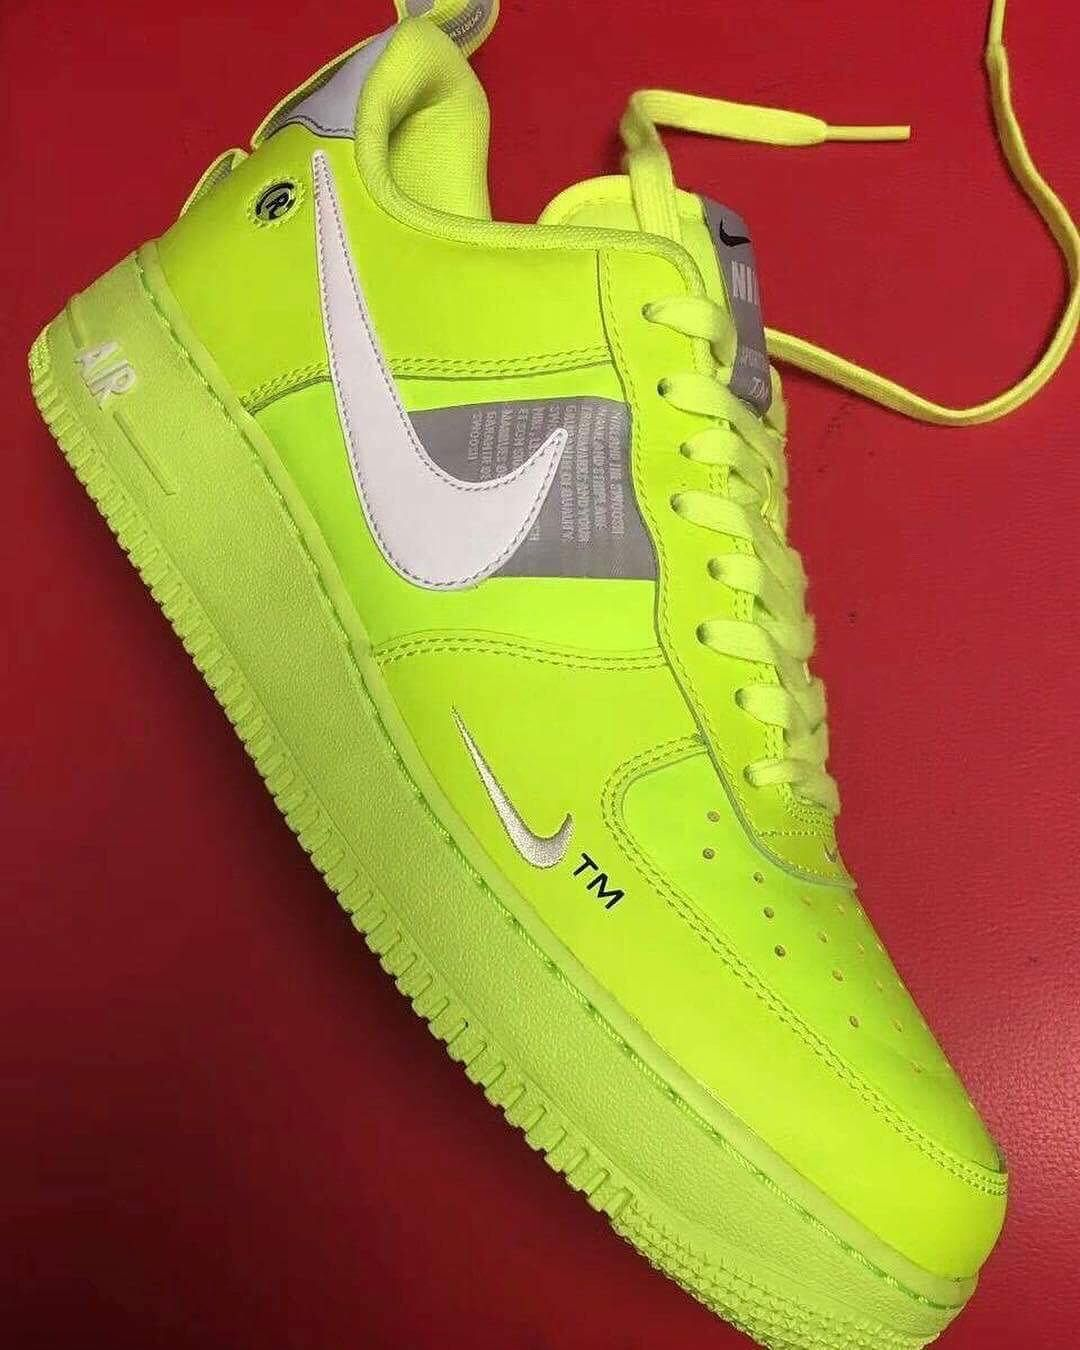 Take A Look At These Bright Fluorescent Yellow Air Force 1 Low Tennis Ball Nike Shoes Air Force Sneakers Air Force Shoes